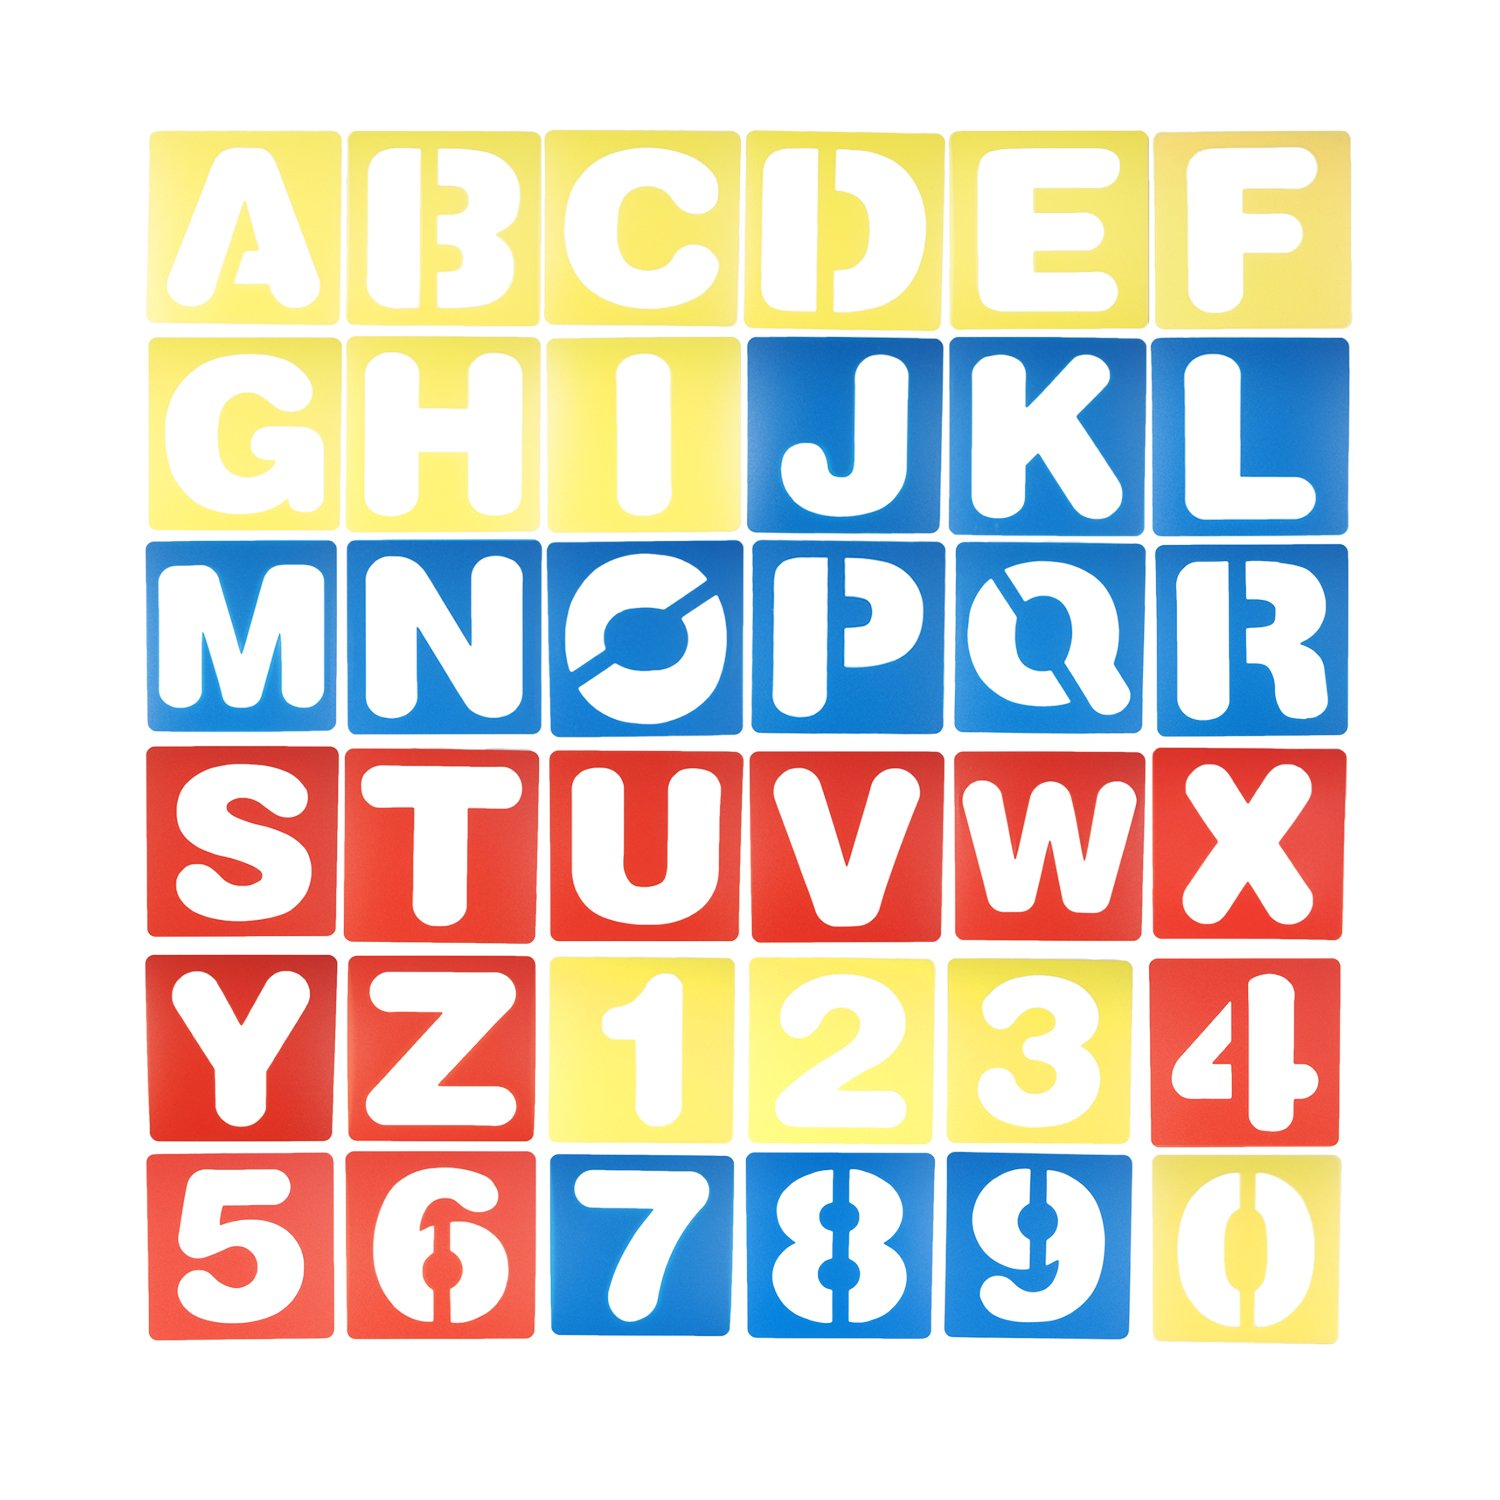 Vfond 36 Pieces Alphabet and Number Stencils Set Plastic Letter Stencils and for Painting Learning, Journaling, Scrapbooking, Card and Art Projects